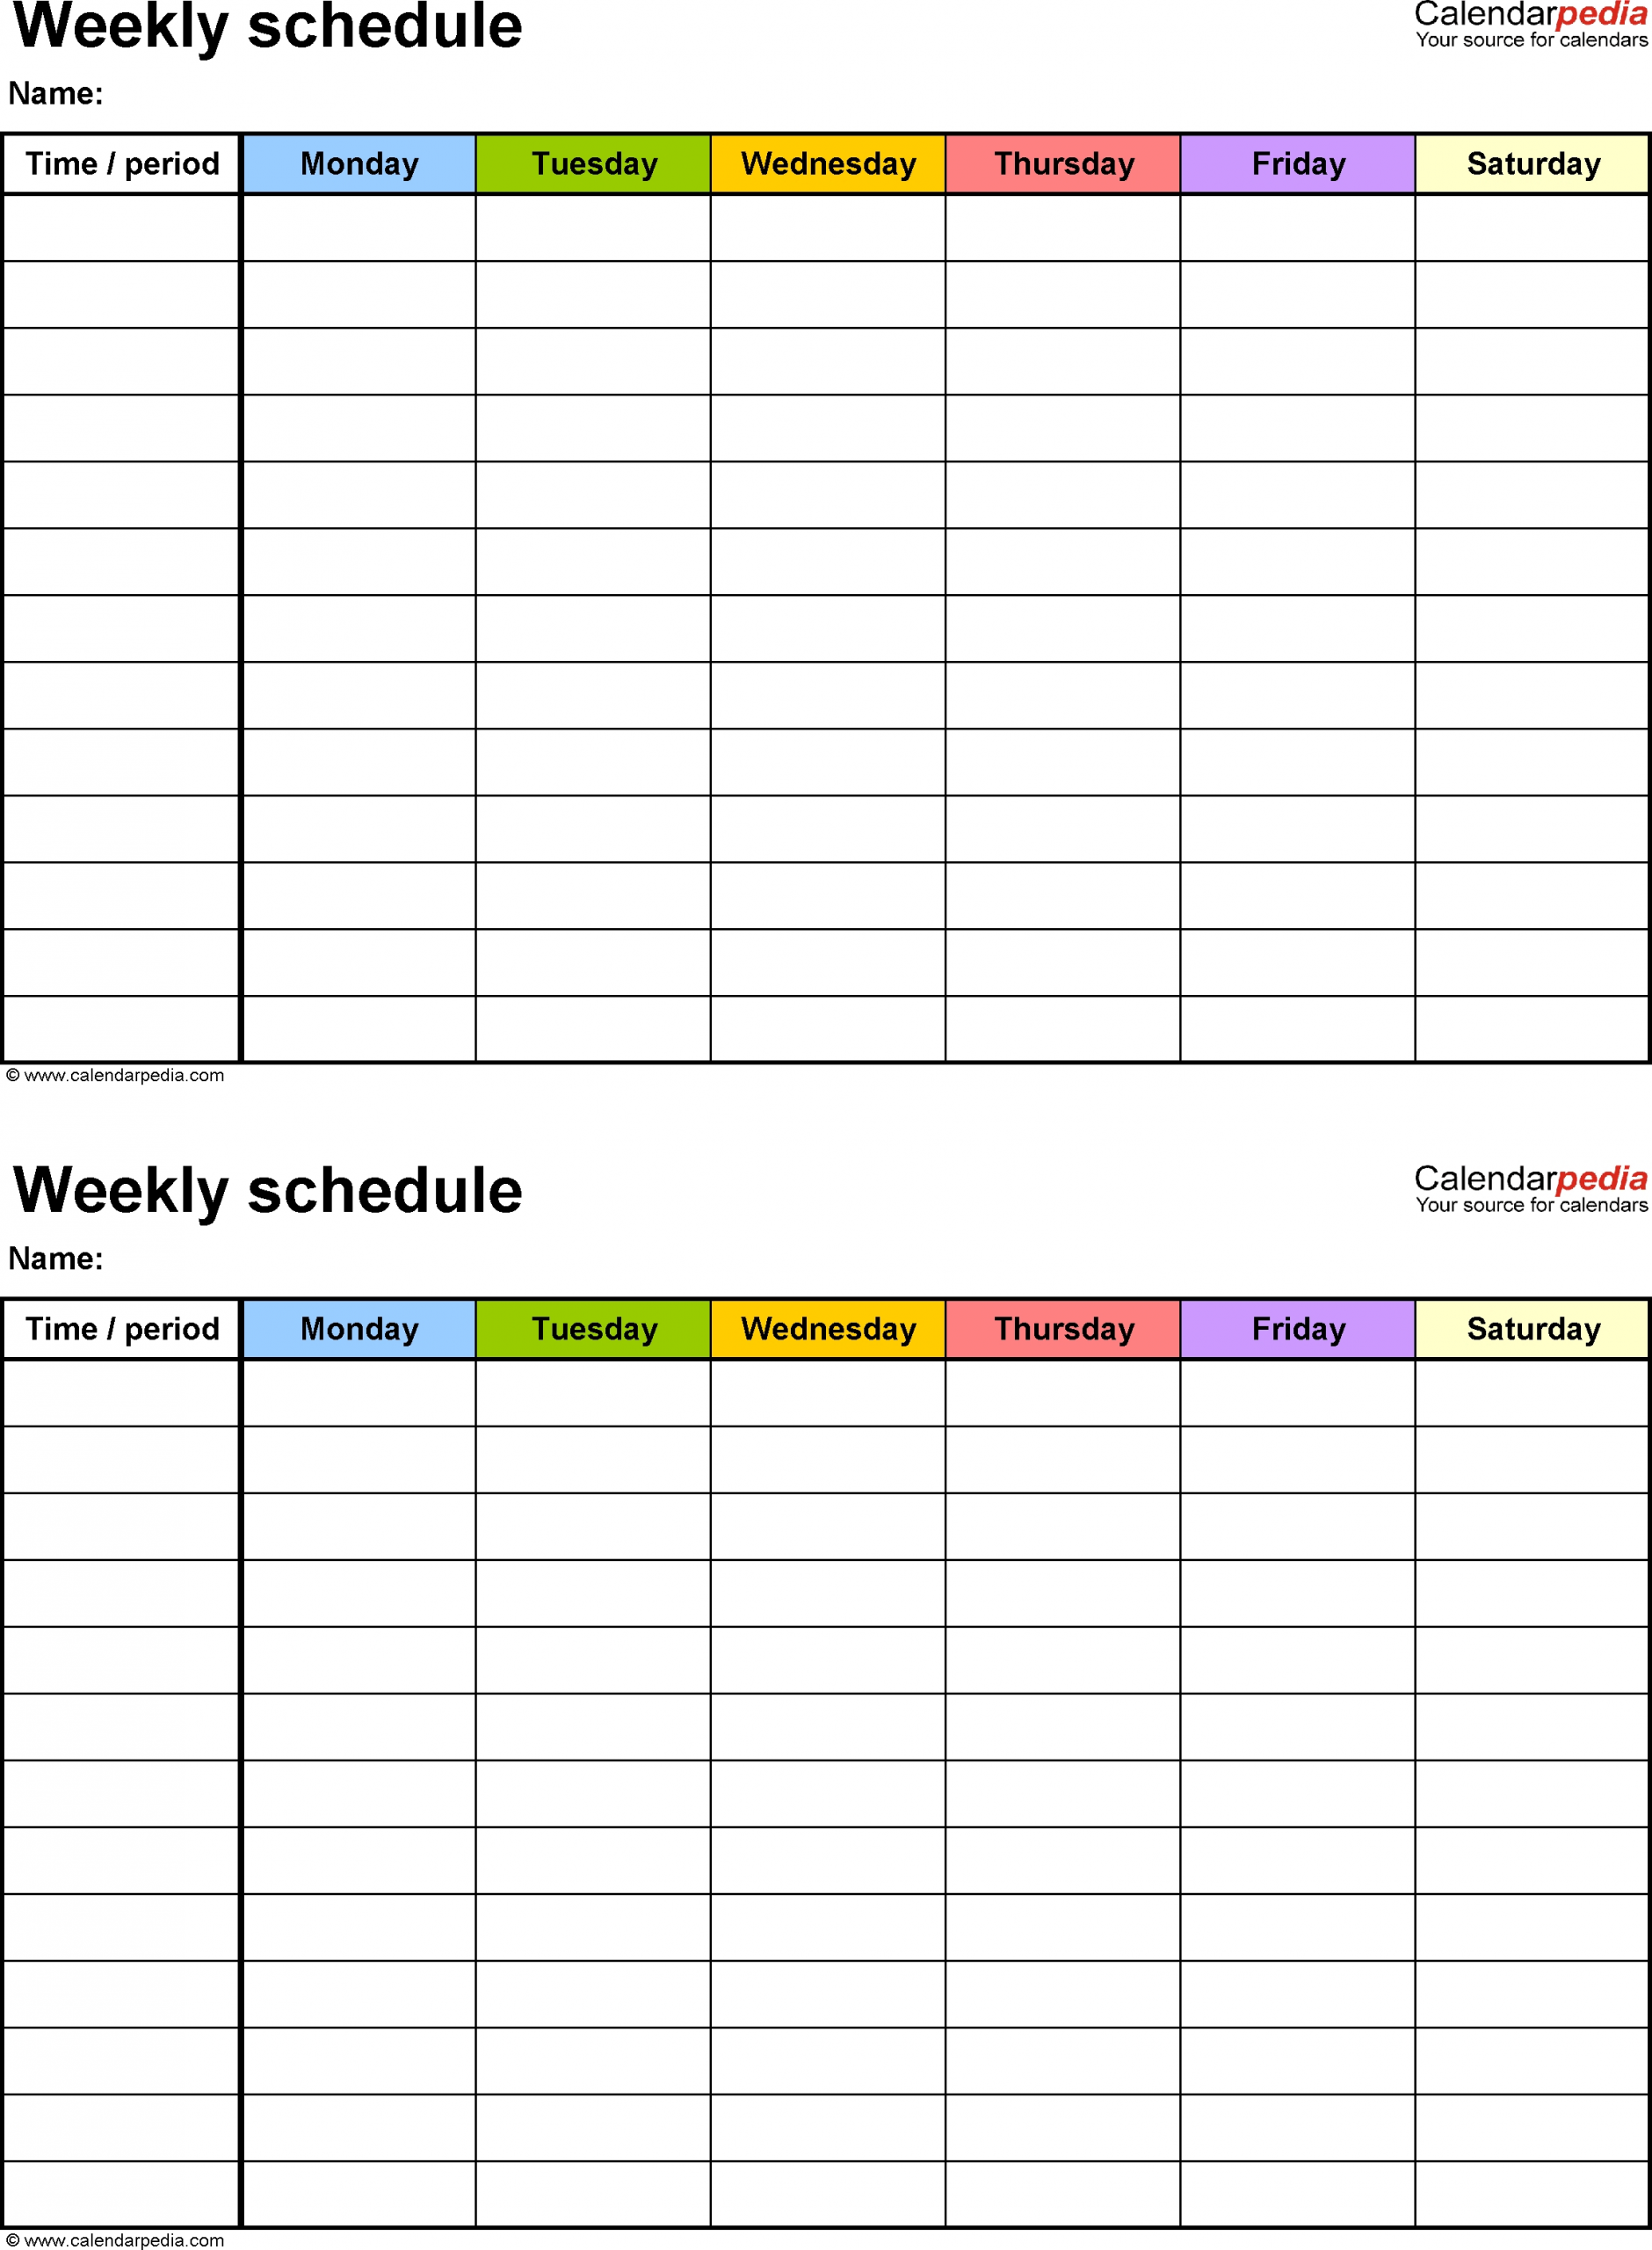 Printable Weekly Schedule Monday Through Friday – Calendar Printable Monday To Friday Timetable